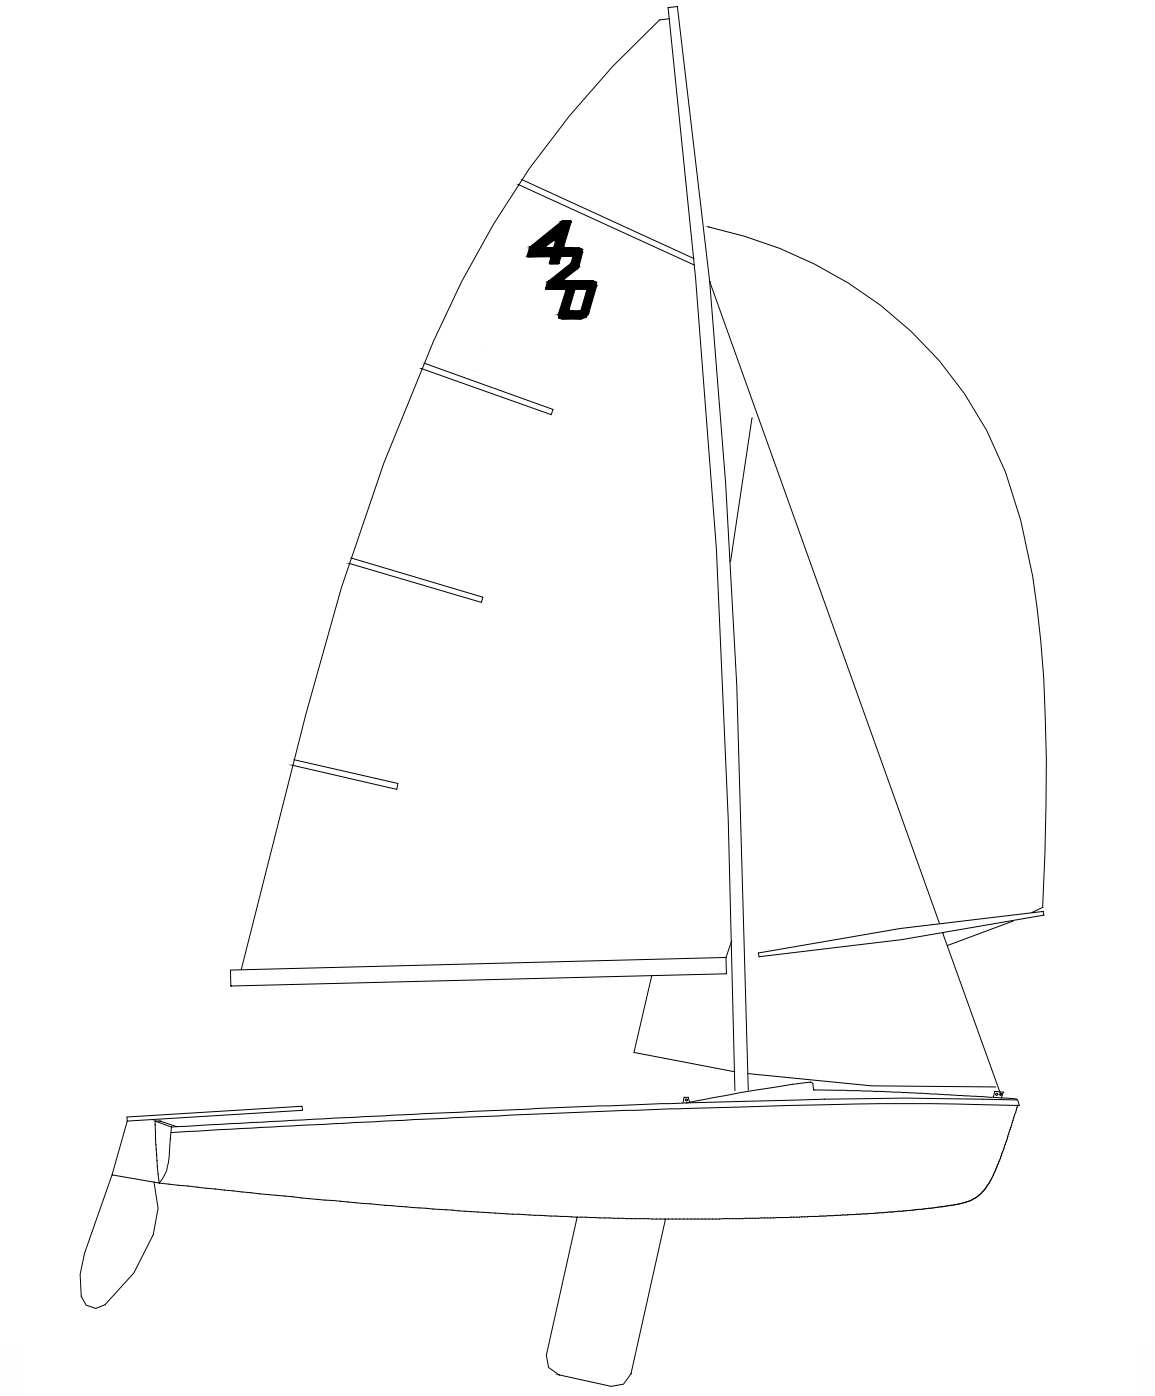 420 Class Sailboat Specifications